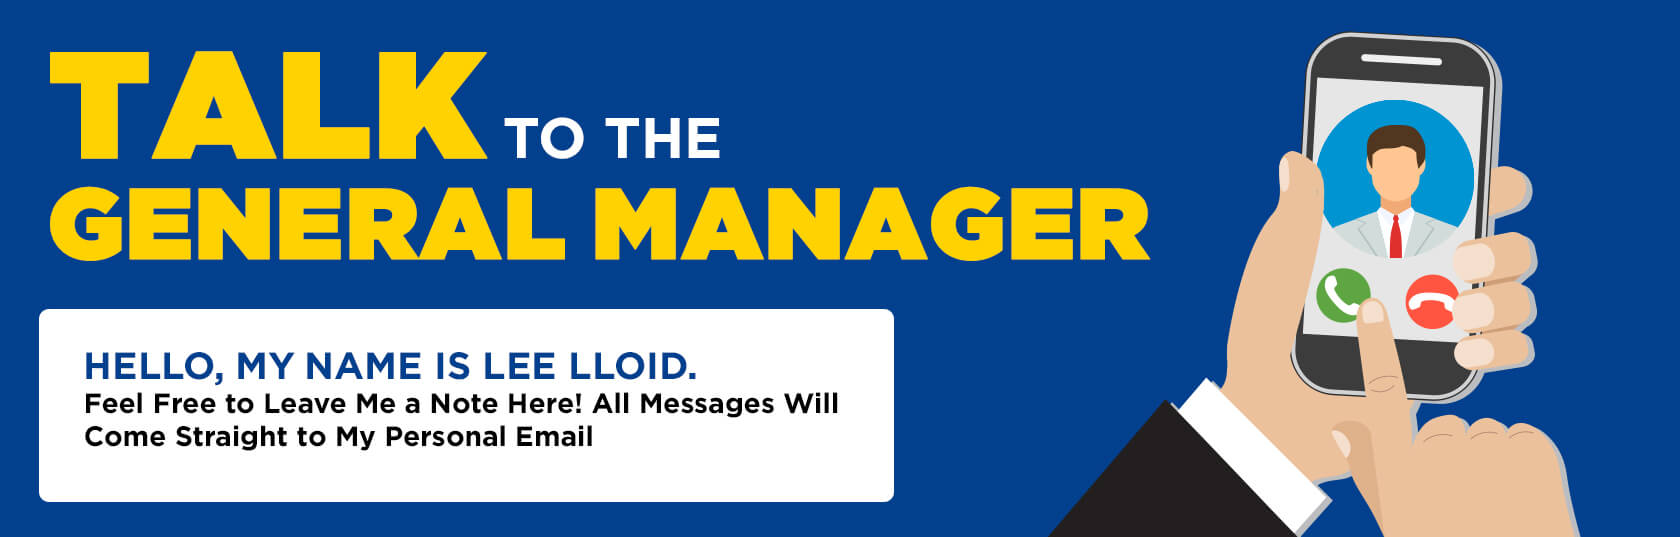 Talk to the General Manager - Hello, My name is Lee Lloid. Feel free to leave me a note here! All Mesages Will Come Straight to my personal email